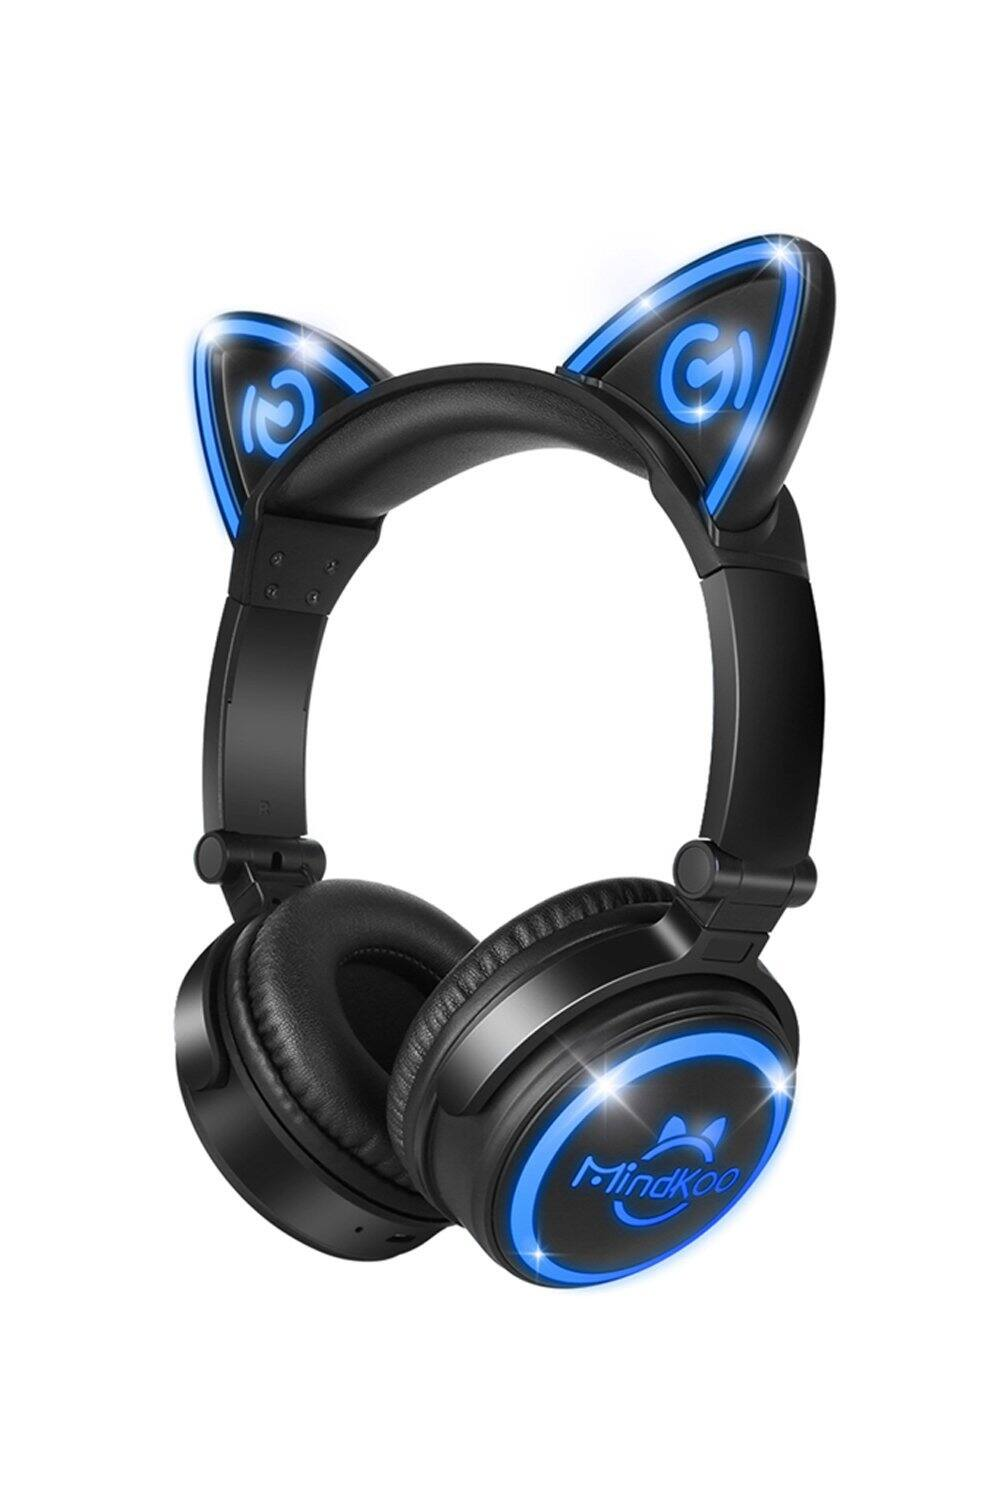 Unicat MH-6 Kids Headphones,Cat Ear Bluetooth V4.2 Headsets On-Ear Earphones wtih Mic - $19.97, FS with Amazon